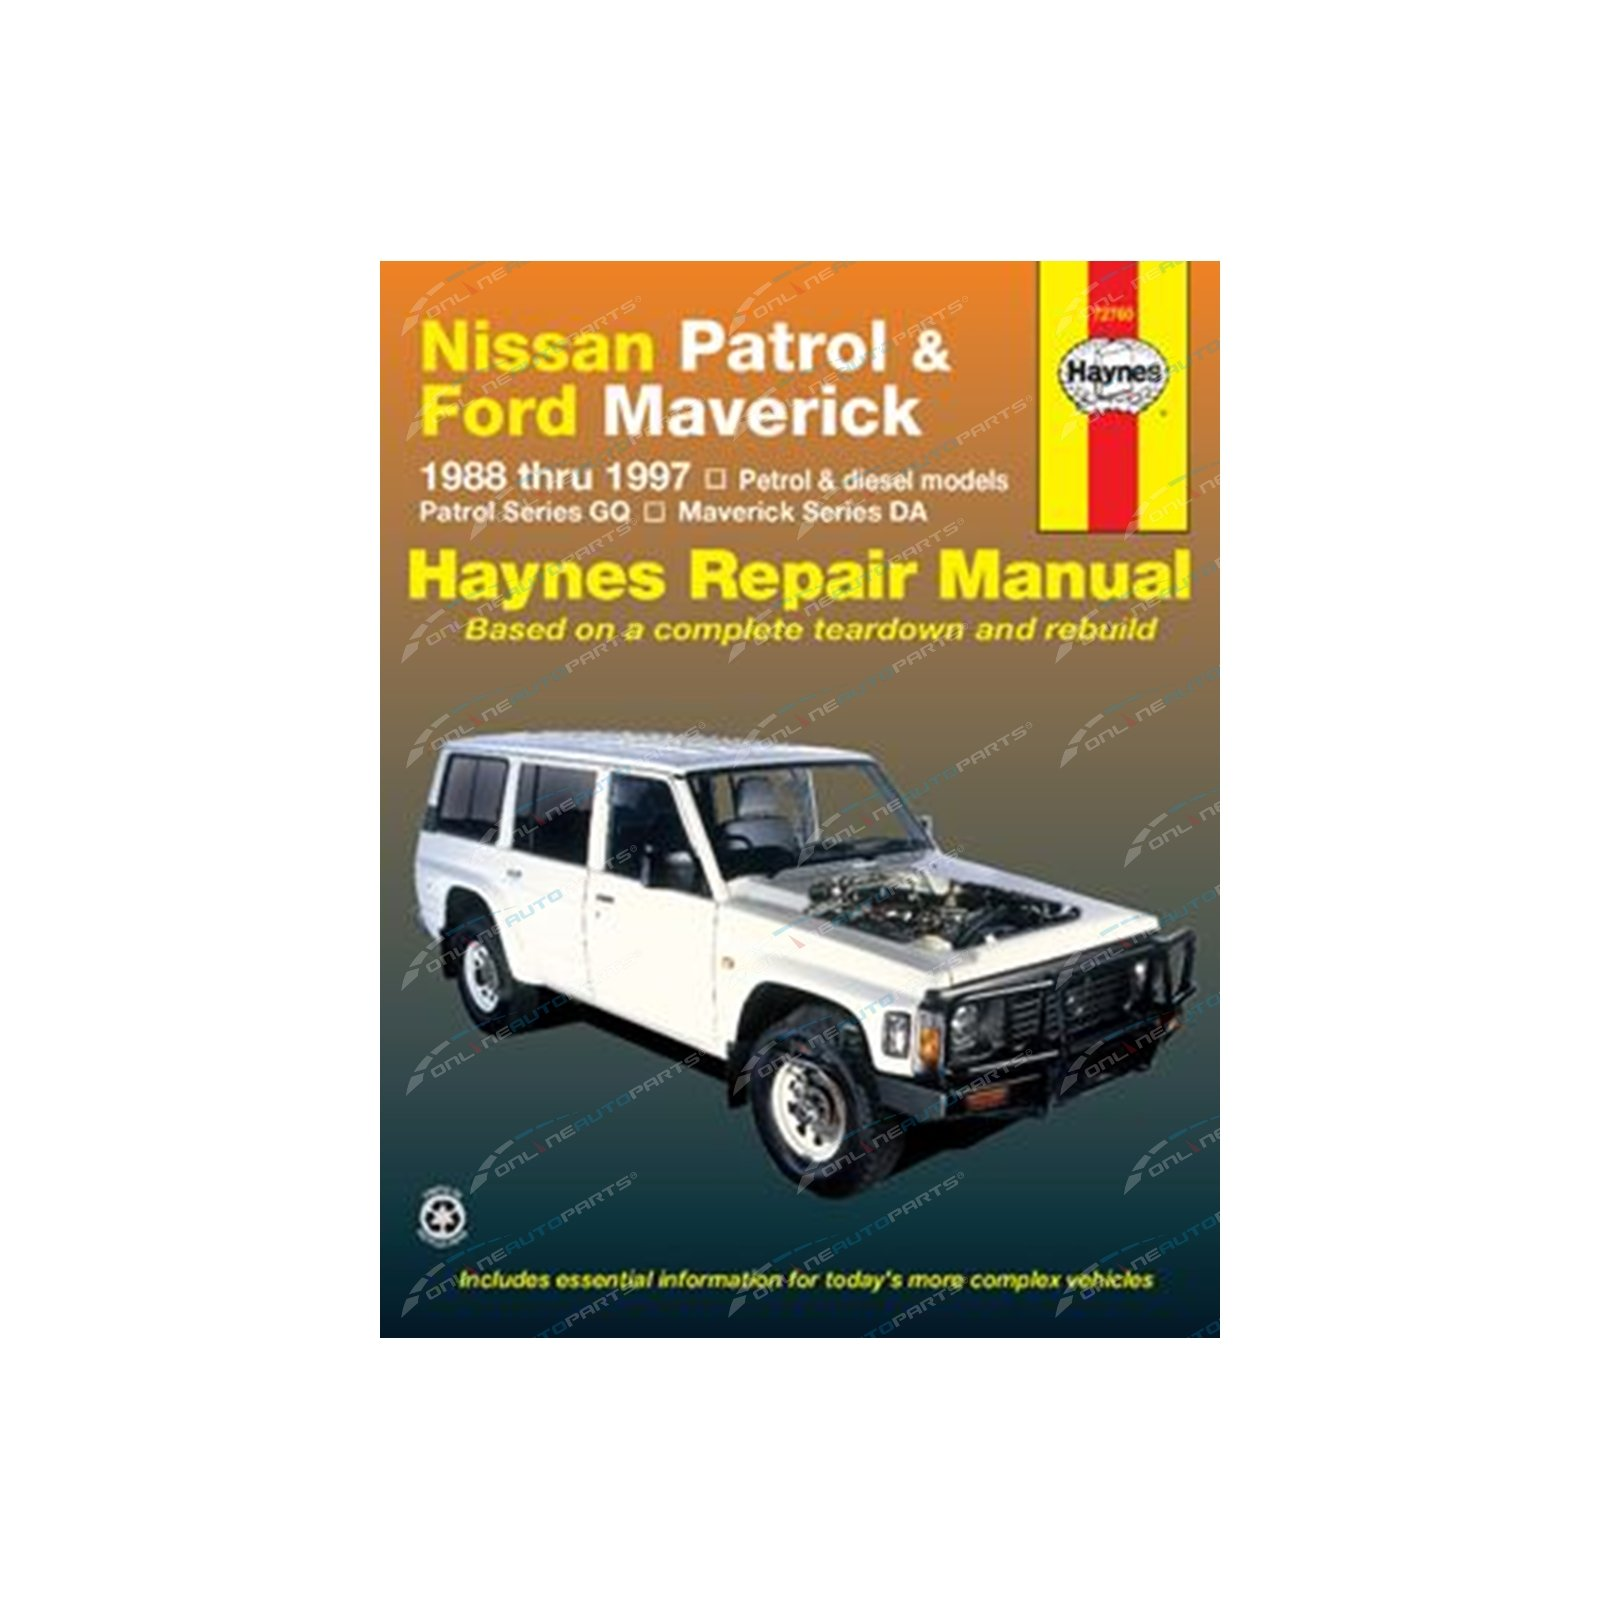 Haynes Car Repair Manual Book for Nissan Patrol GQ GR Y60 Petrol + Diesel  Engine incl